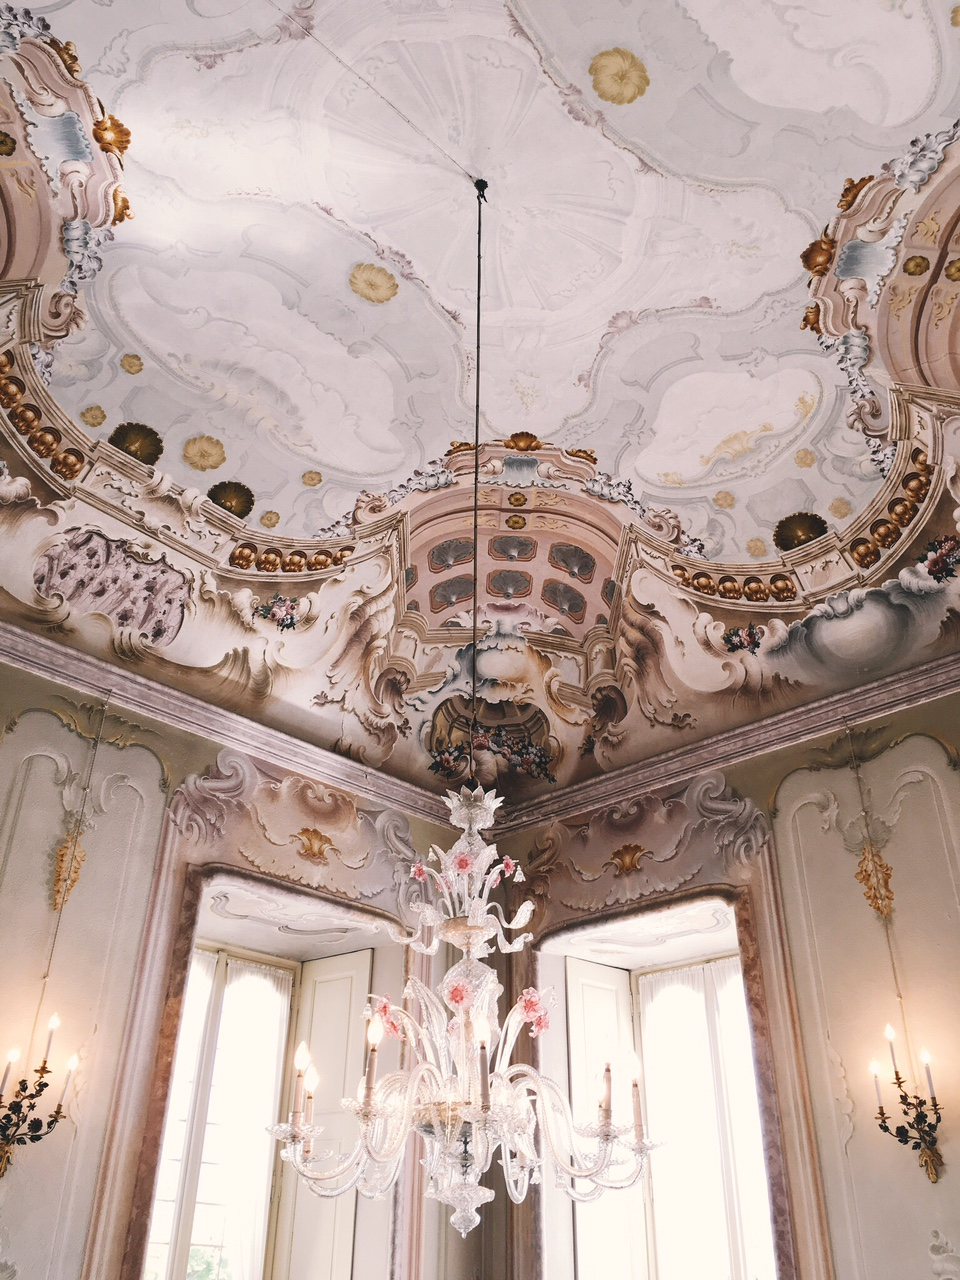 Lunch location at Villa Sola Cabiati with frescoed ceilings and elaborate chandeliers